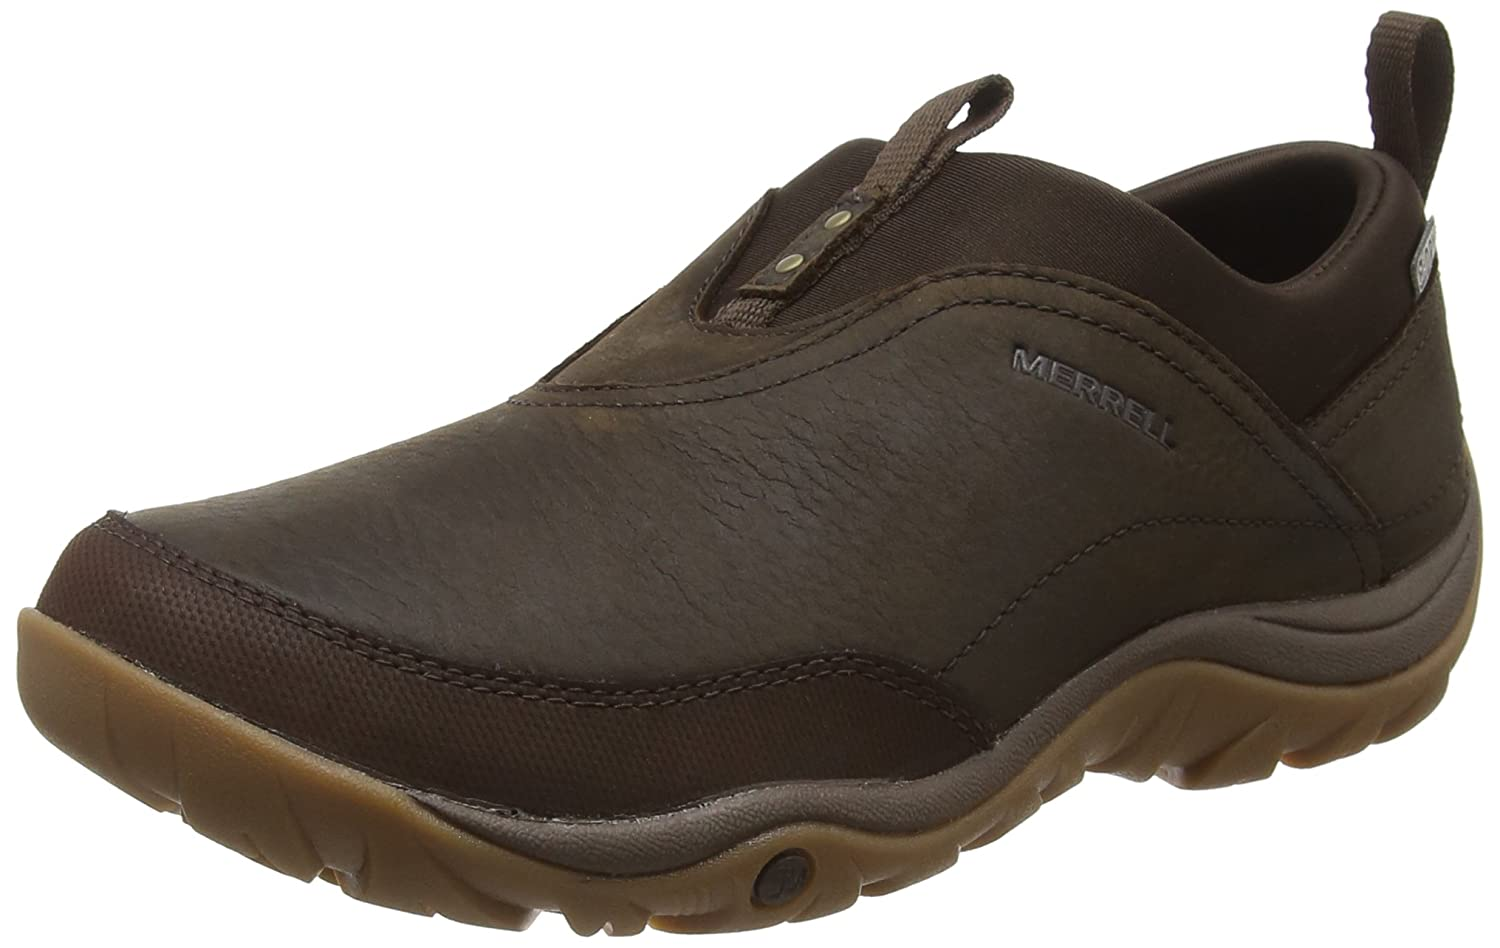 Merrell Women's Murren Moc Waterproof Shoe B019587IFC 6 B(M) US|Bracken